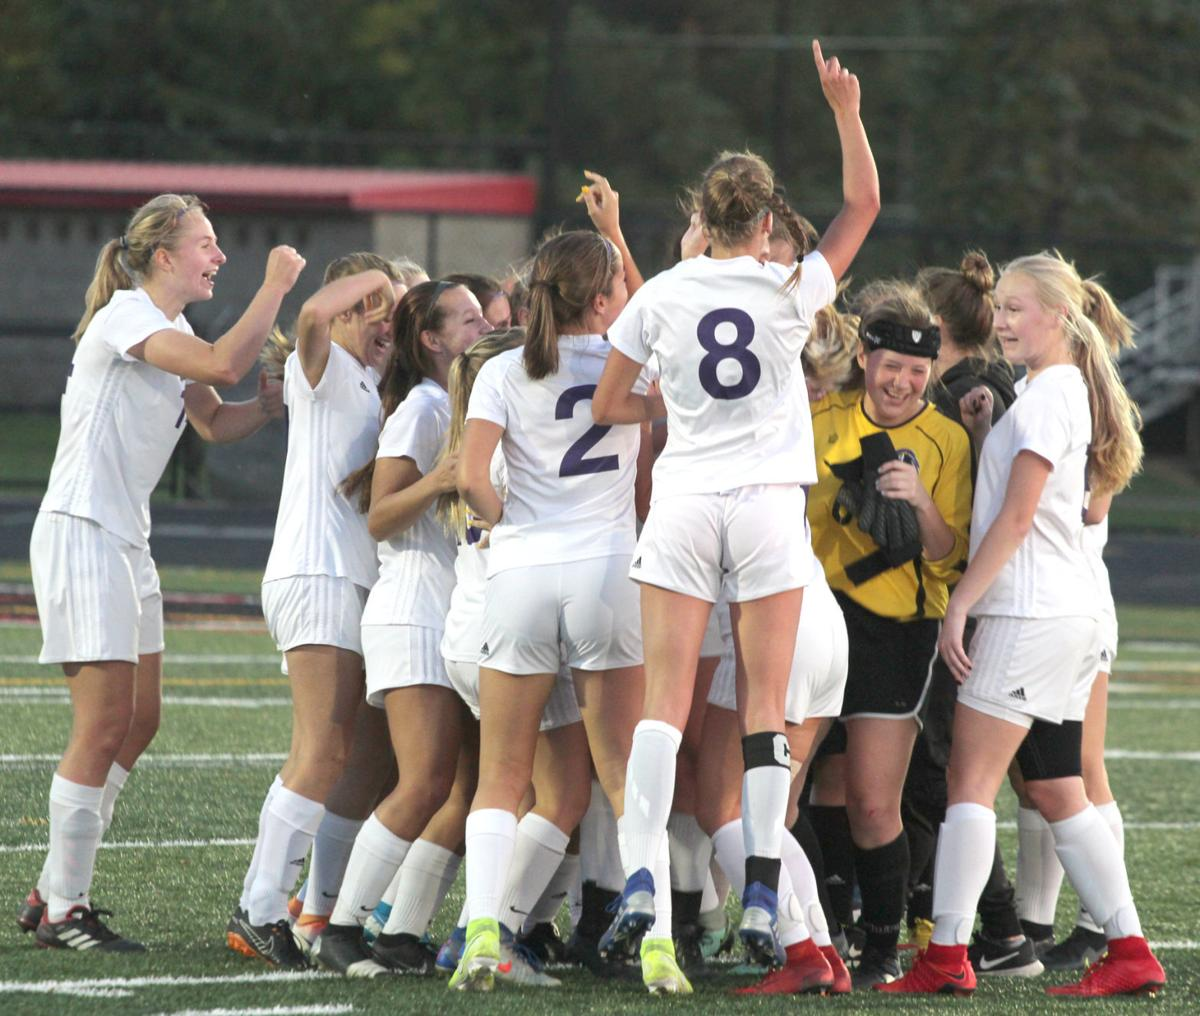 Chaska Soccer - Celebration